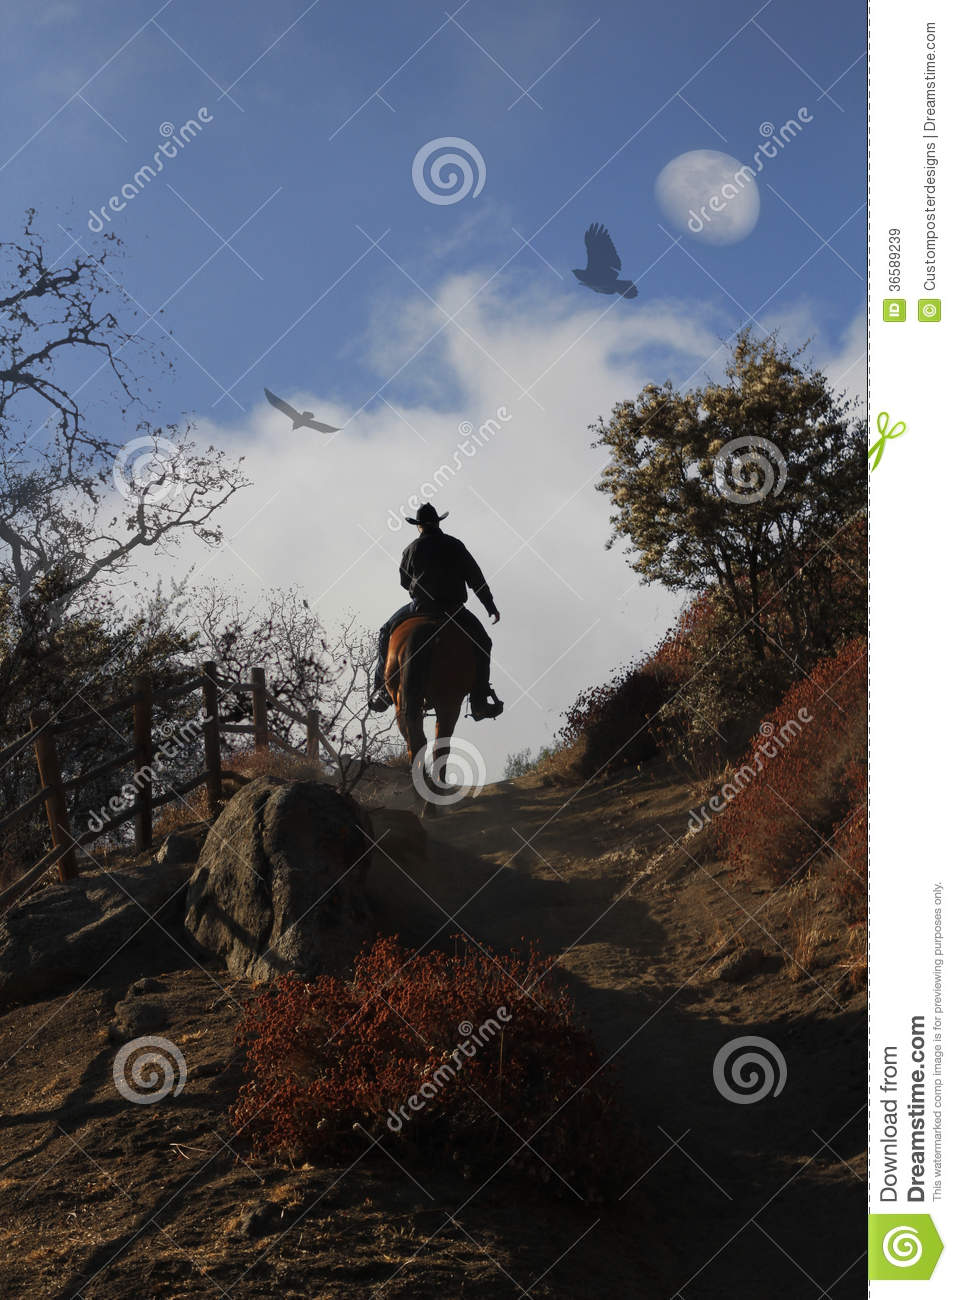 A Cowboy Riding His Horse Up A Hill. Stock Image - Image ...